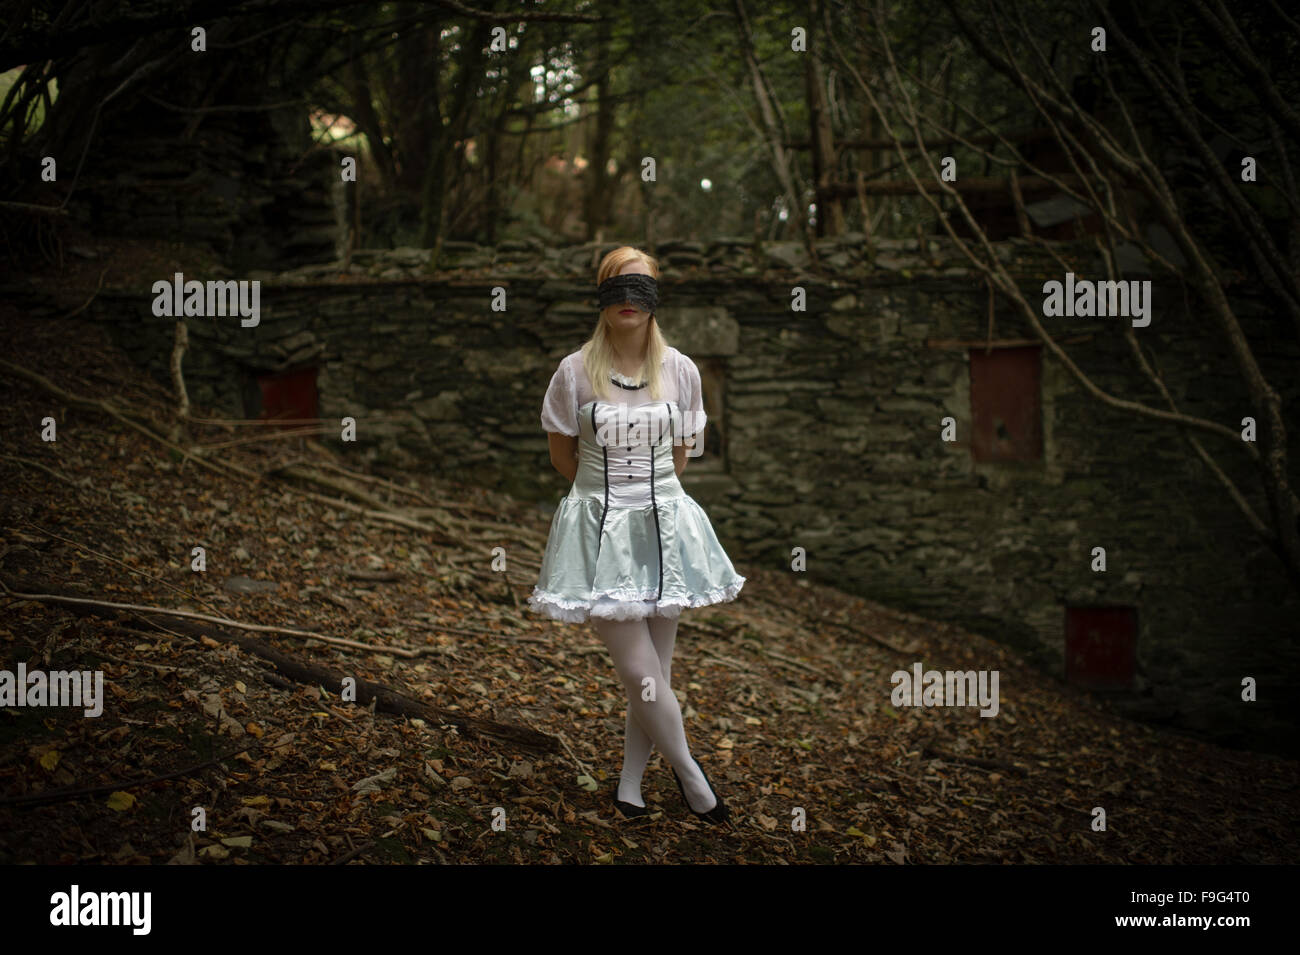 Malice in Wonderland / nightmare: a pretty blonde young woman girl, blindfolded,  wearing an 'Alice' type - Stock Image